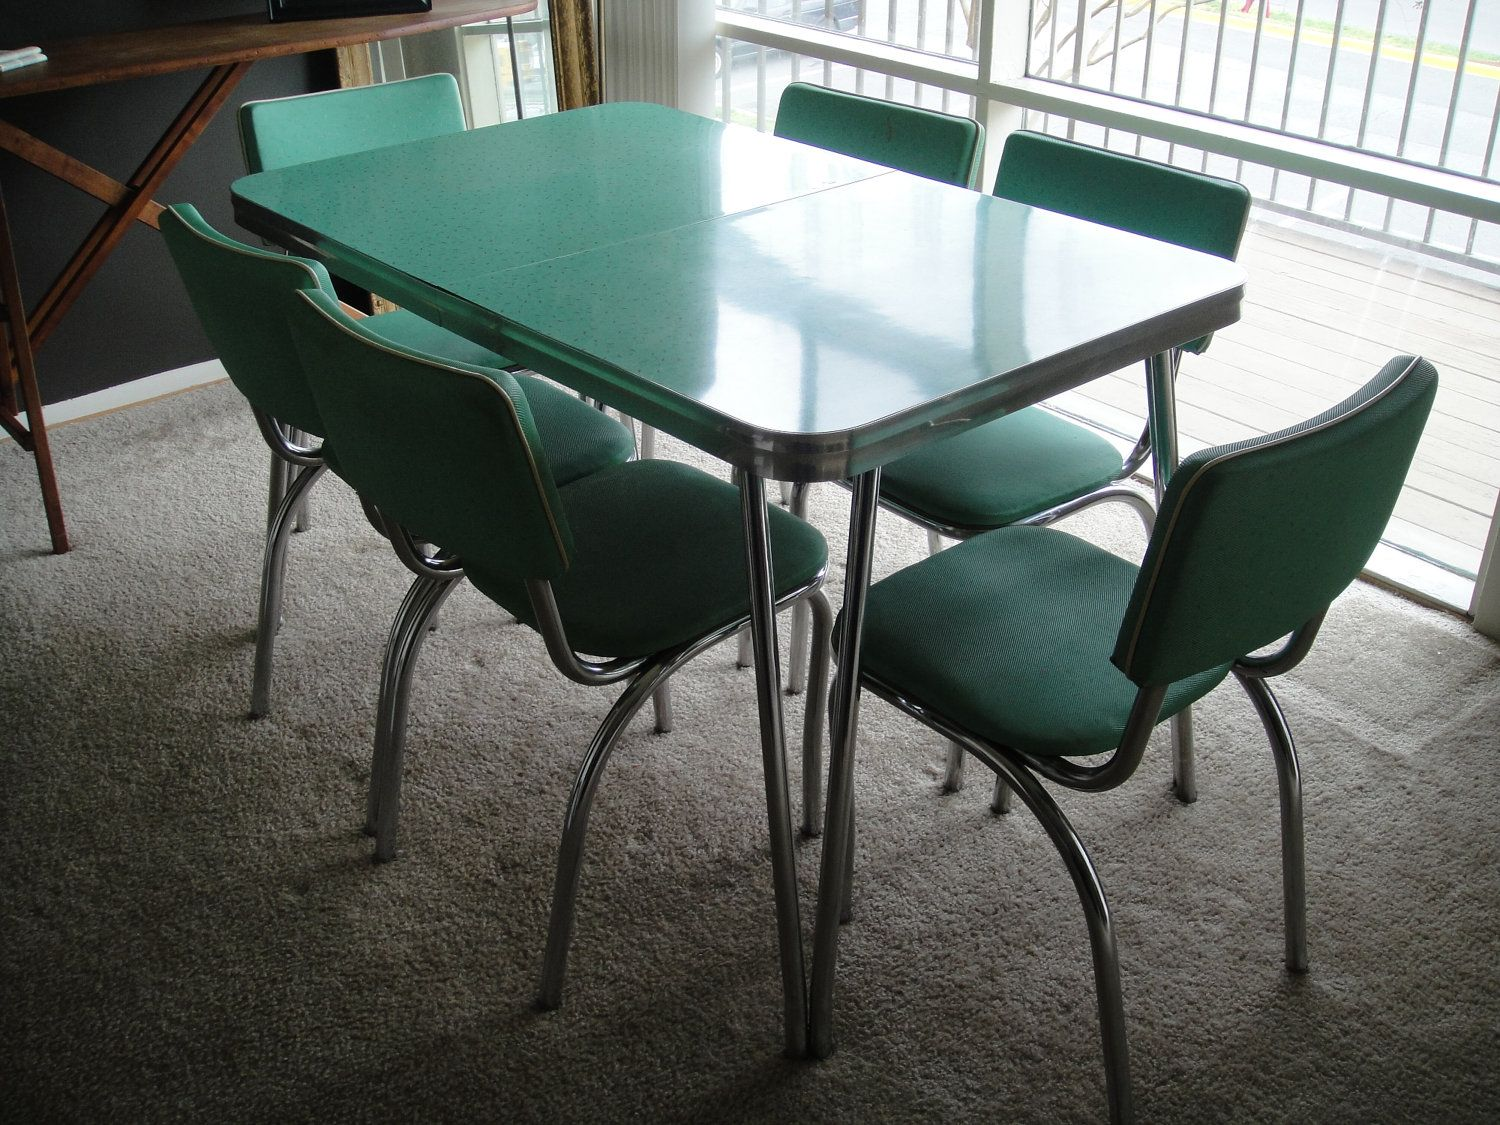 retro kitchen table sets RESERVED s Kitchen Table and Chairs Mint Dining Set with Six Chairs Formica with Chrome Legs and Details PICK UP ONLy